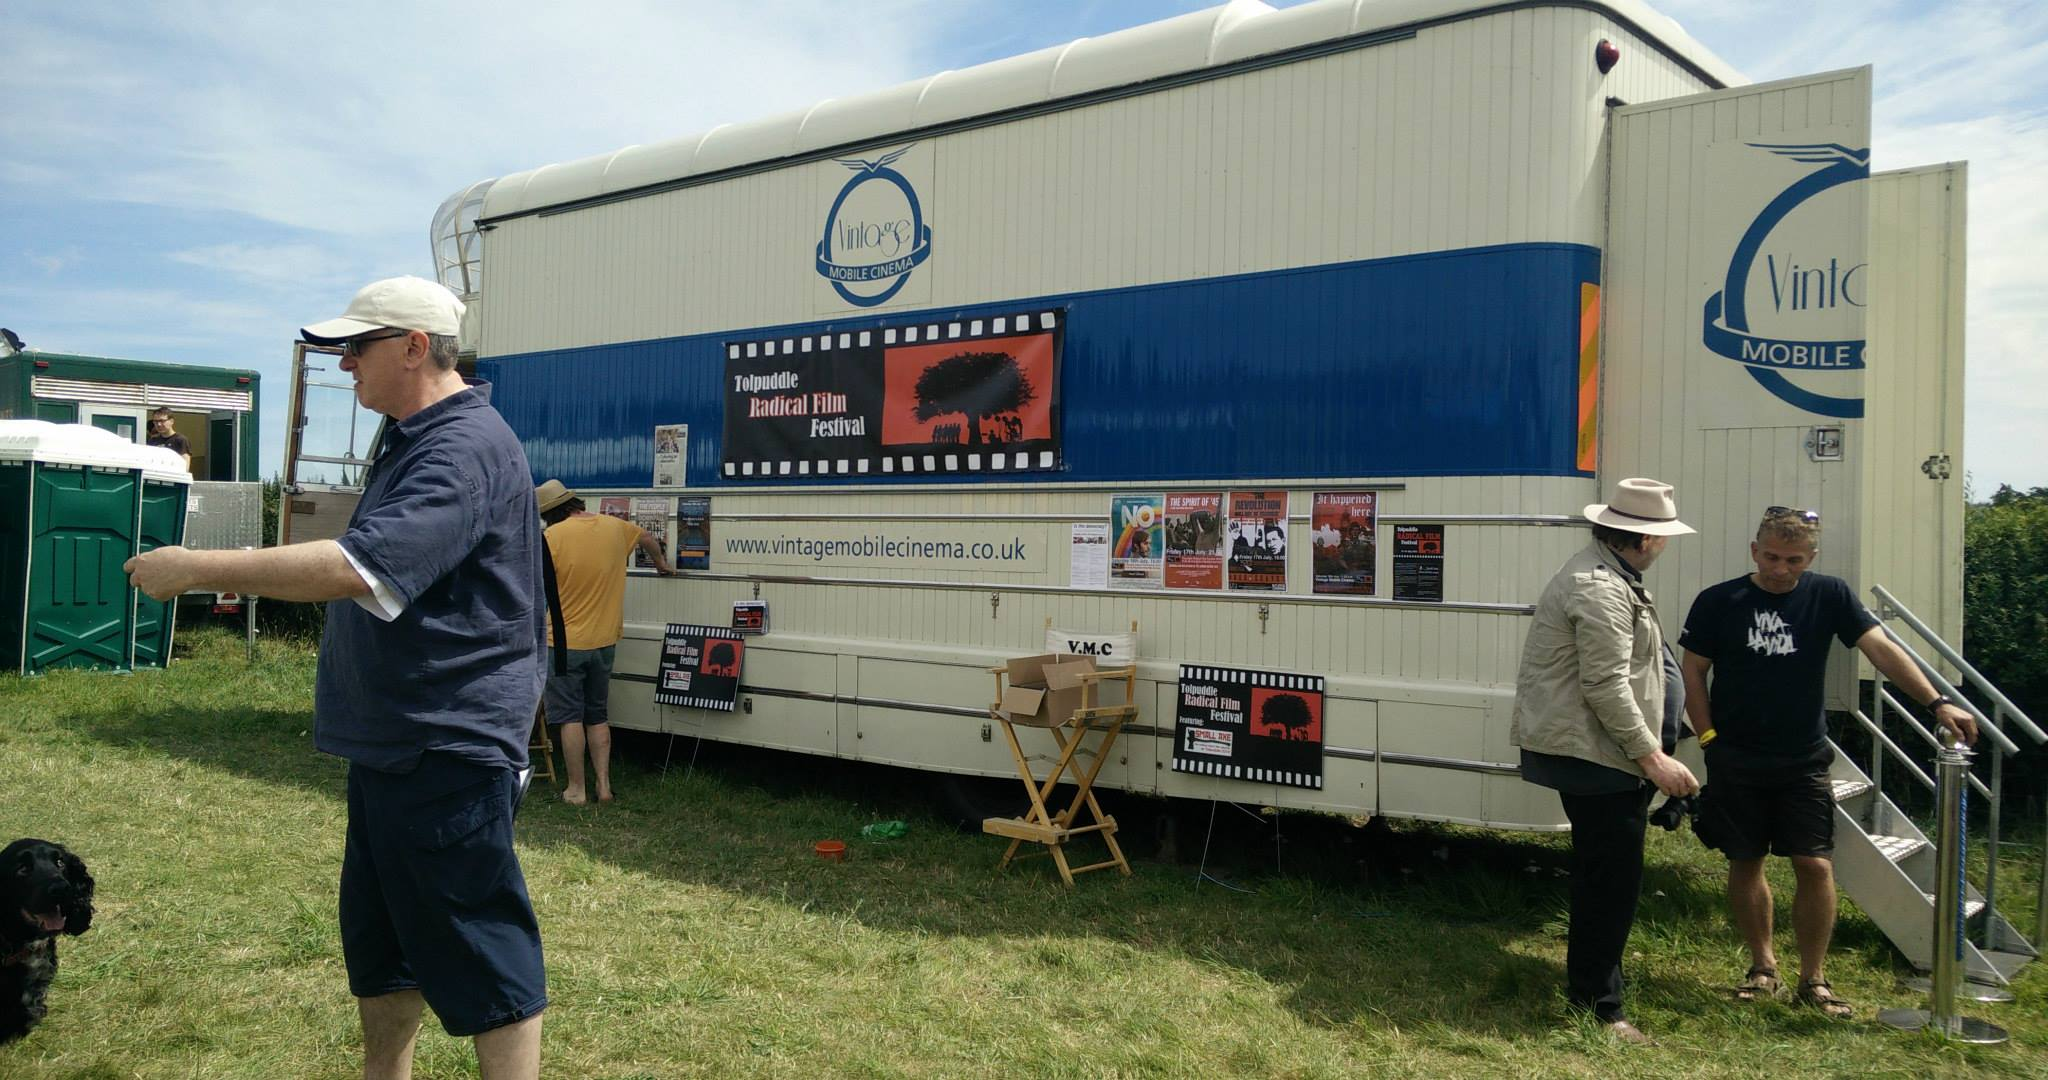 Tolpuddle09